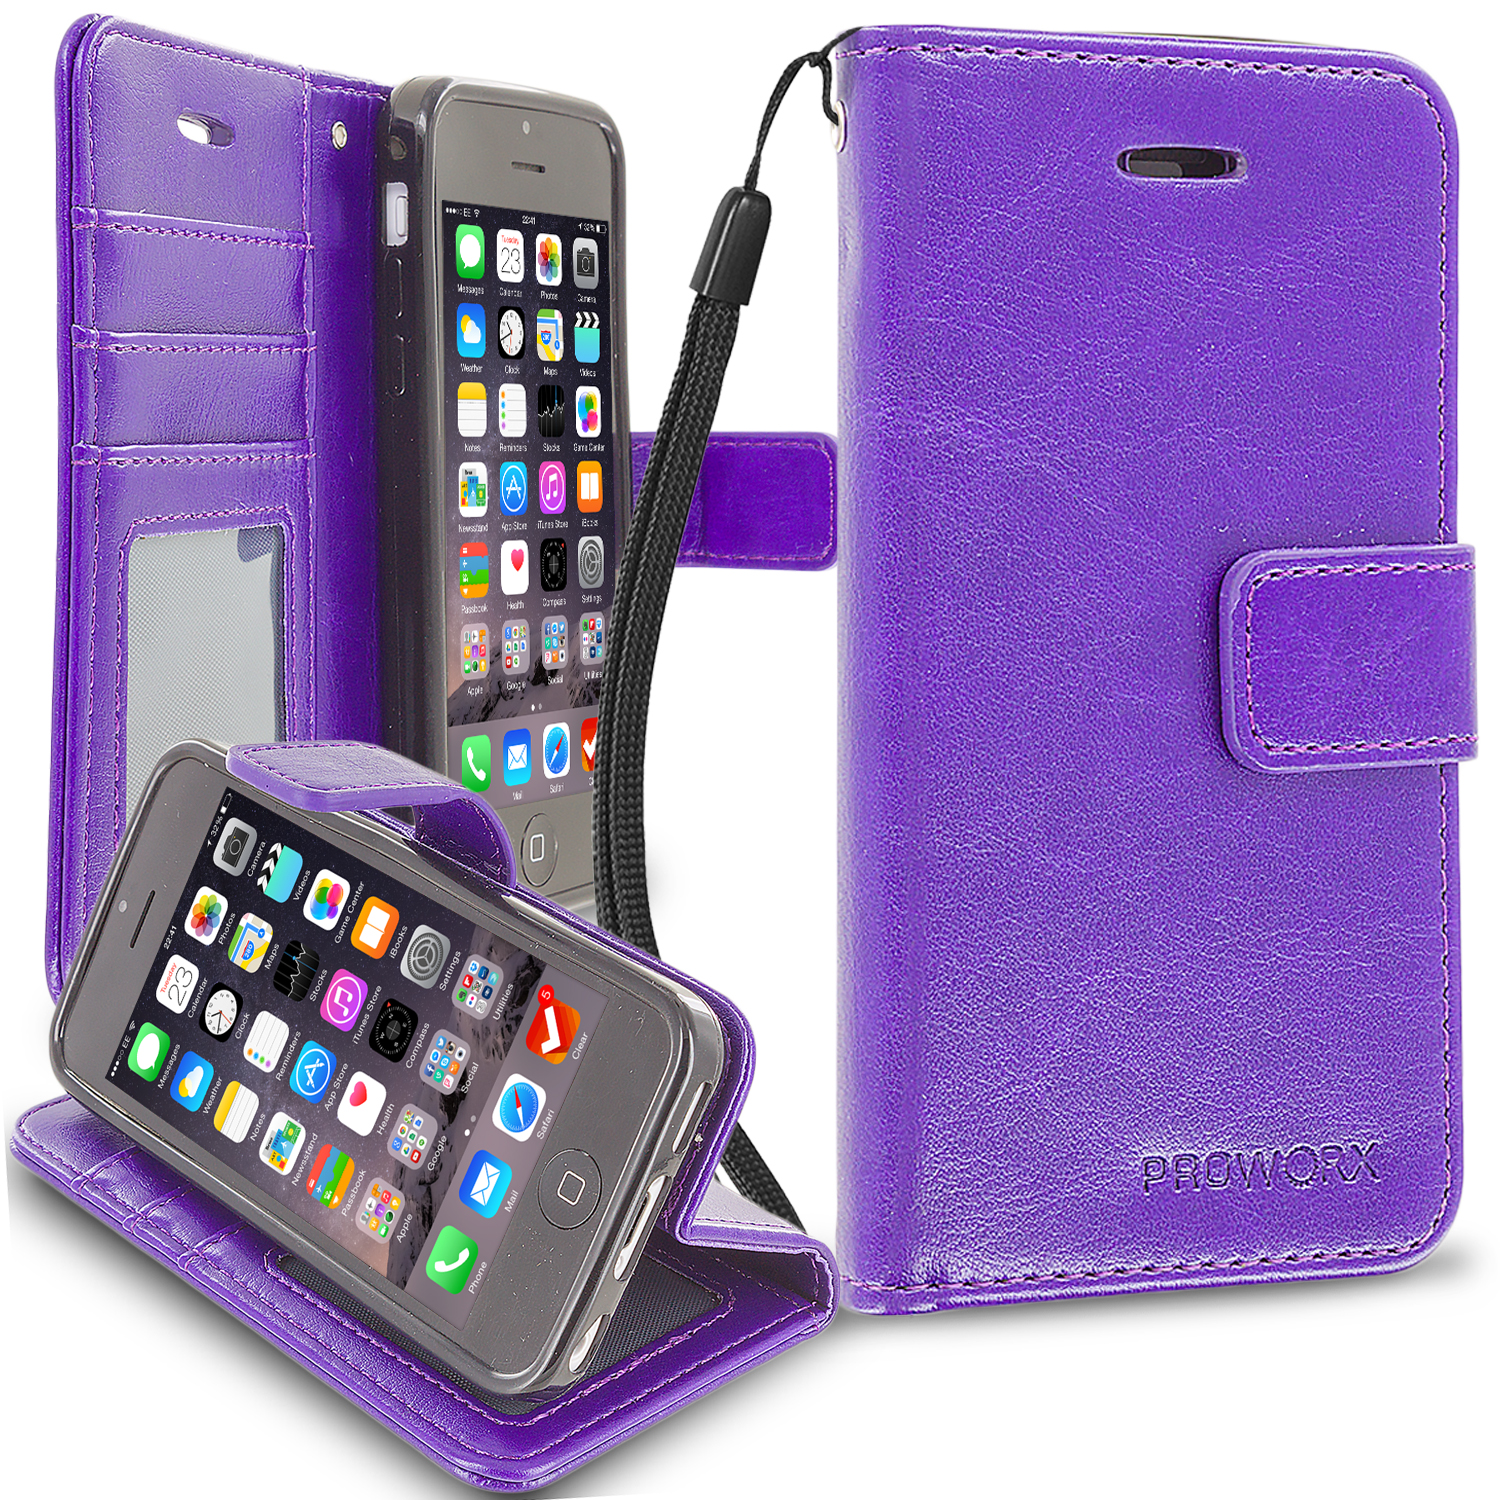 Apple iPhone 5C Purple ProWorx Wallet Case Luxury PU Leather Case Cover With Card Slots & Stand